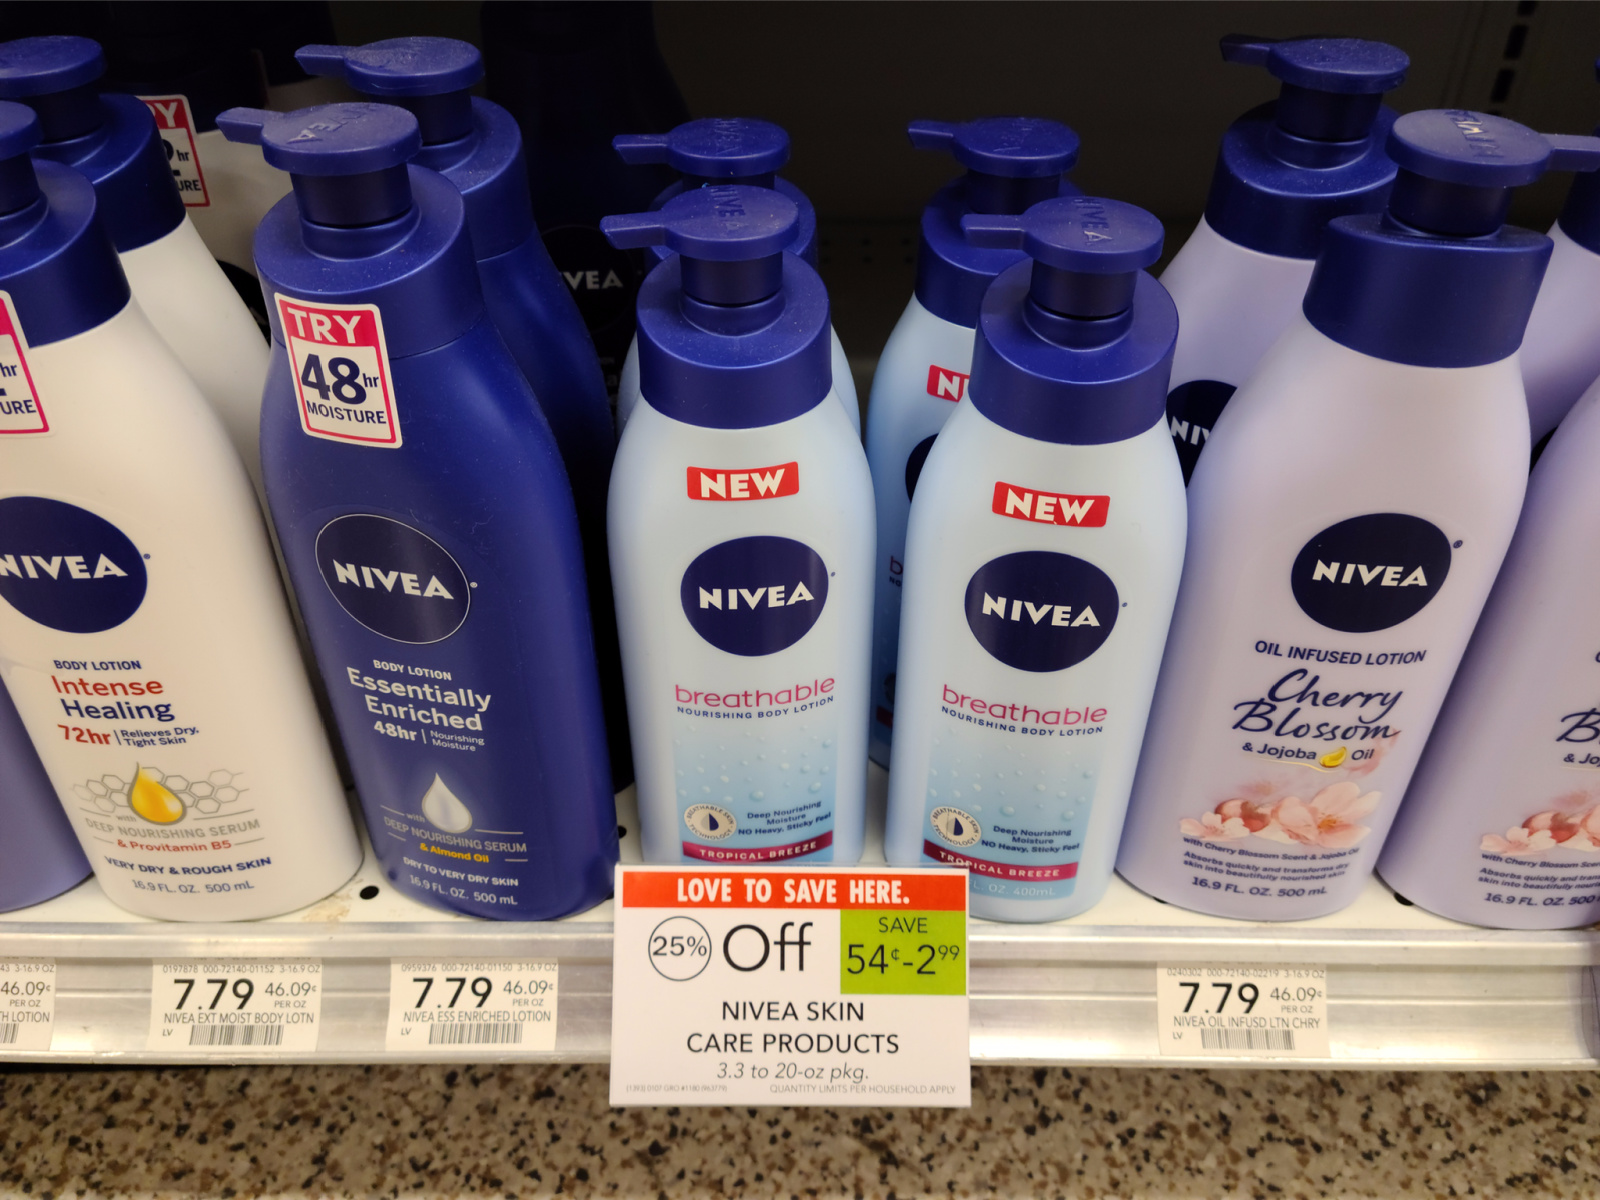 Nivea Breathable Body Lotion Just 84¢ At Publix on I Heart Publix